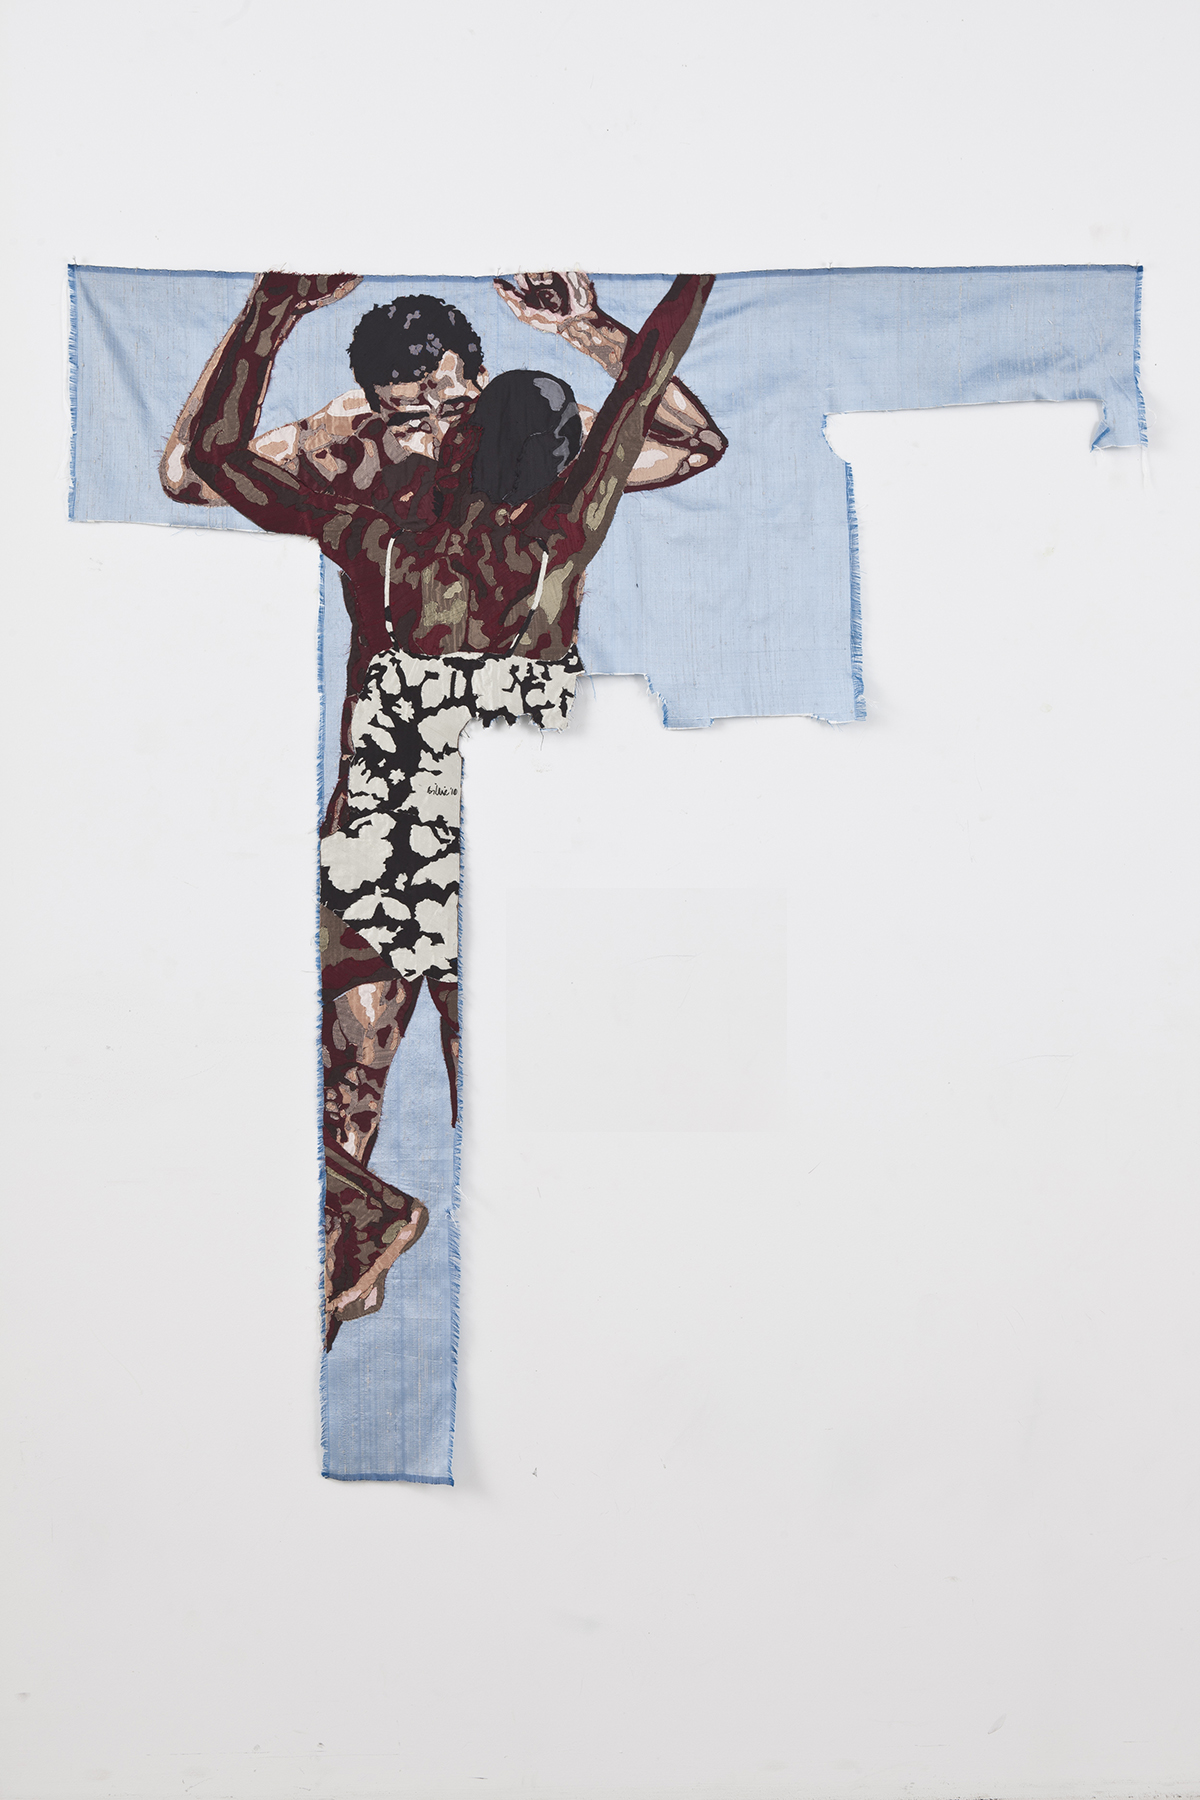 Billie Zangewa Disarming mars, 2010